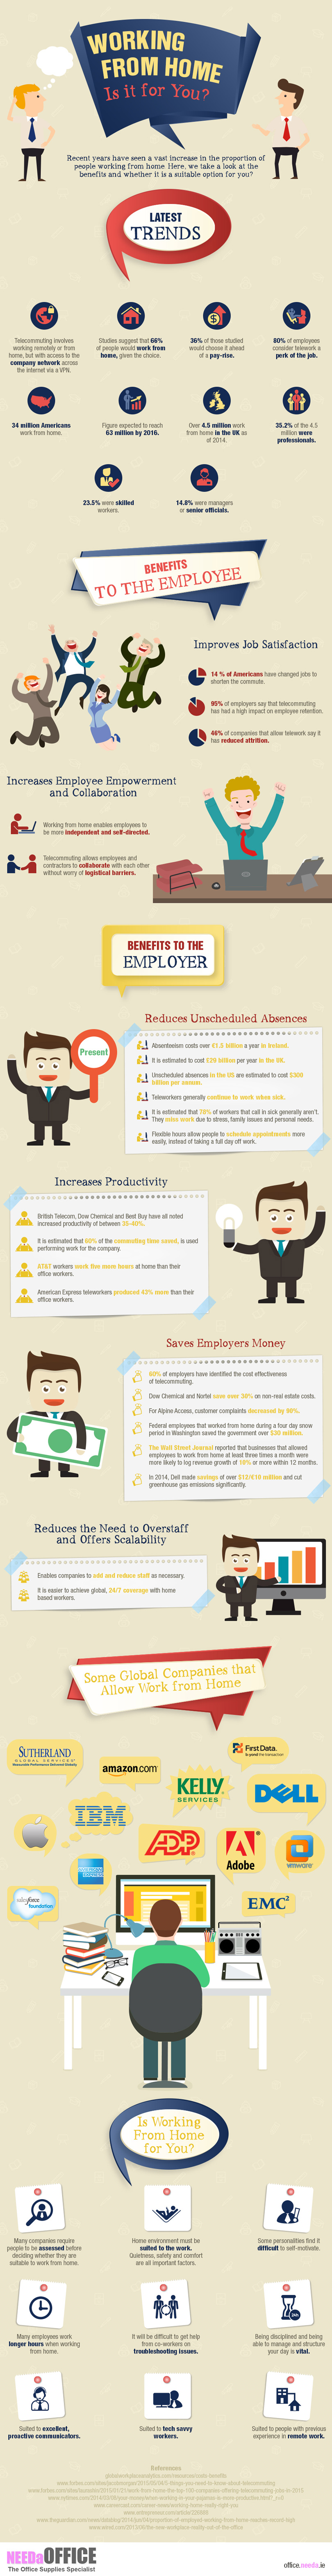 Working-From-Home-Infographic-2